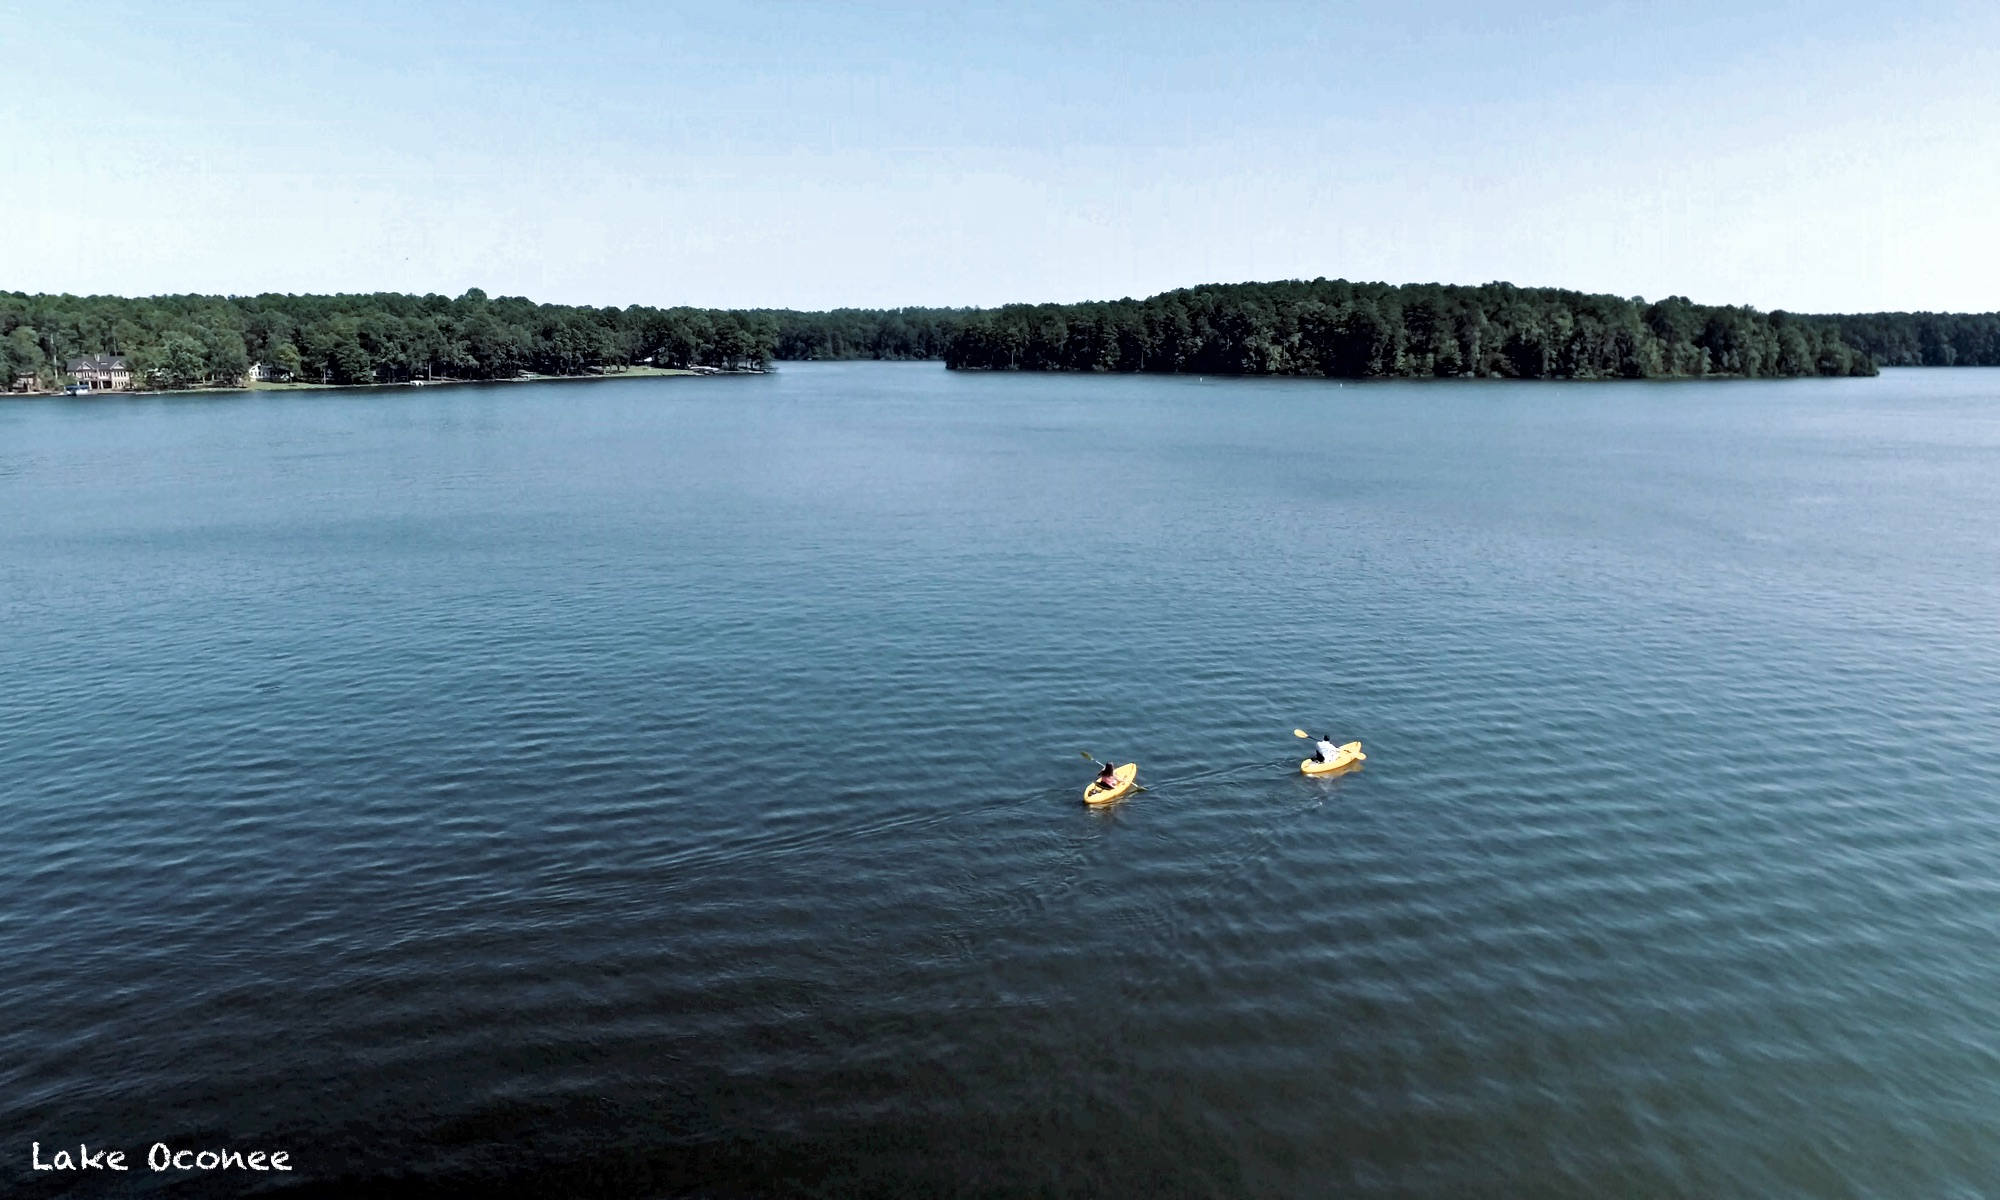 Lake Oconee Attractions